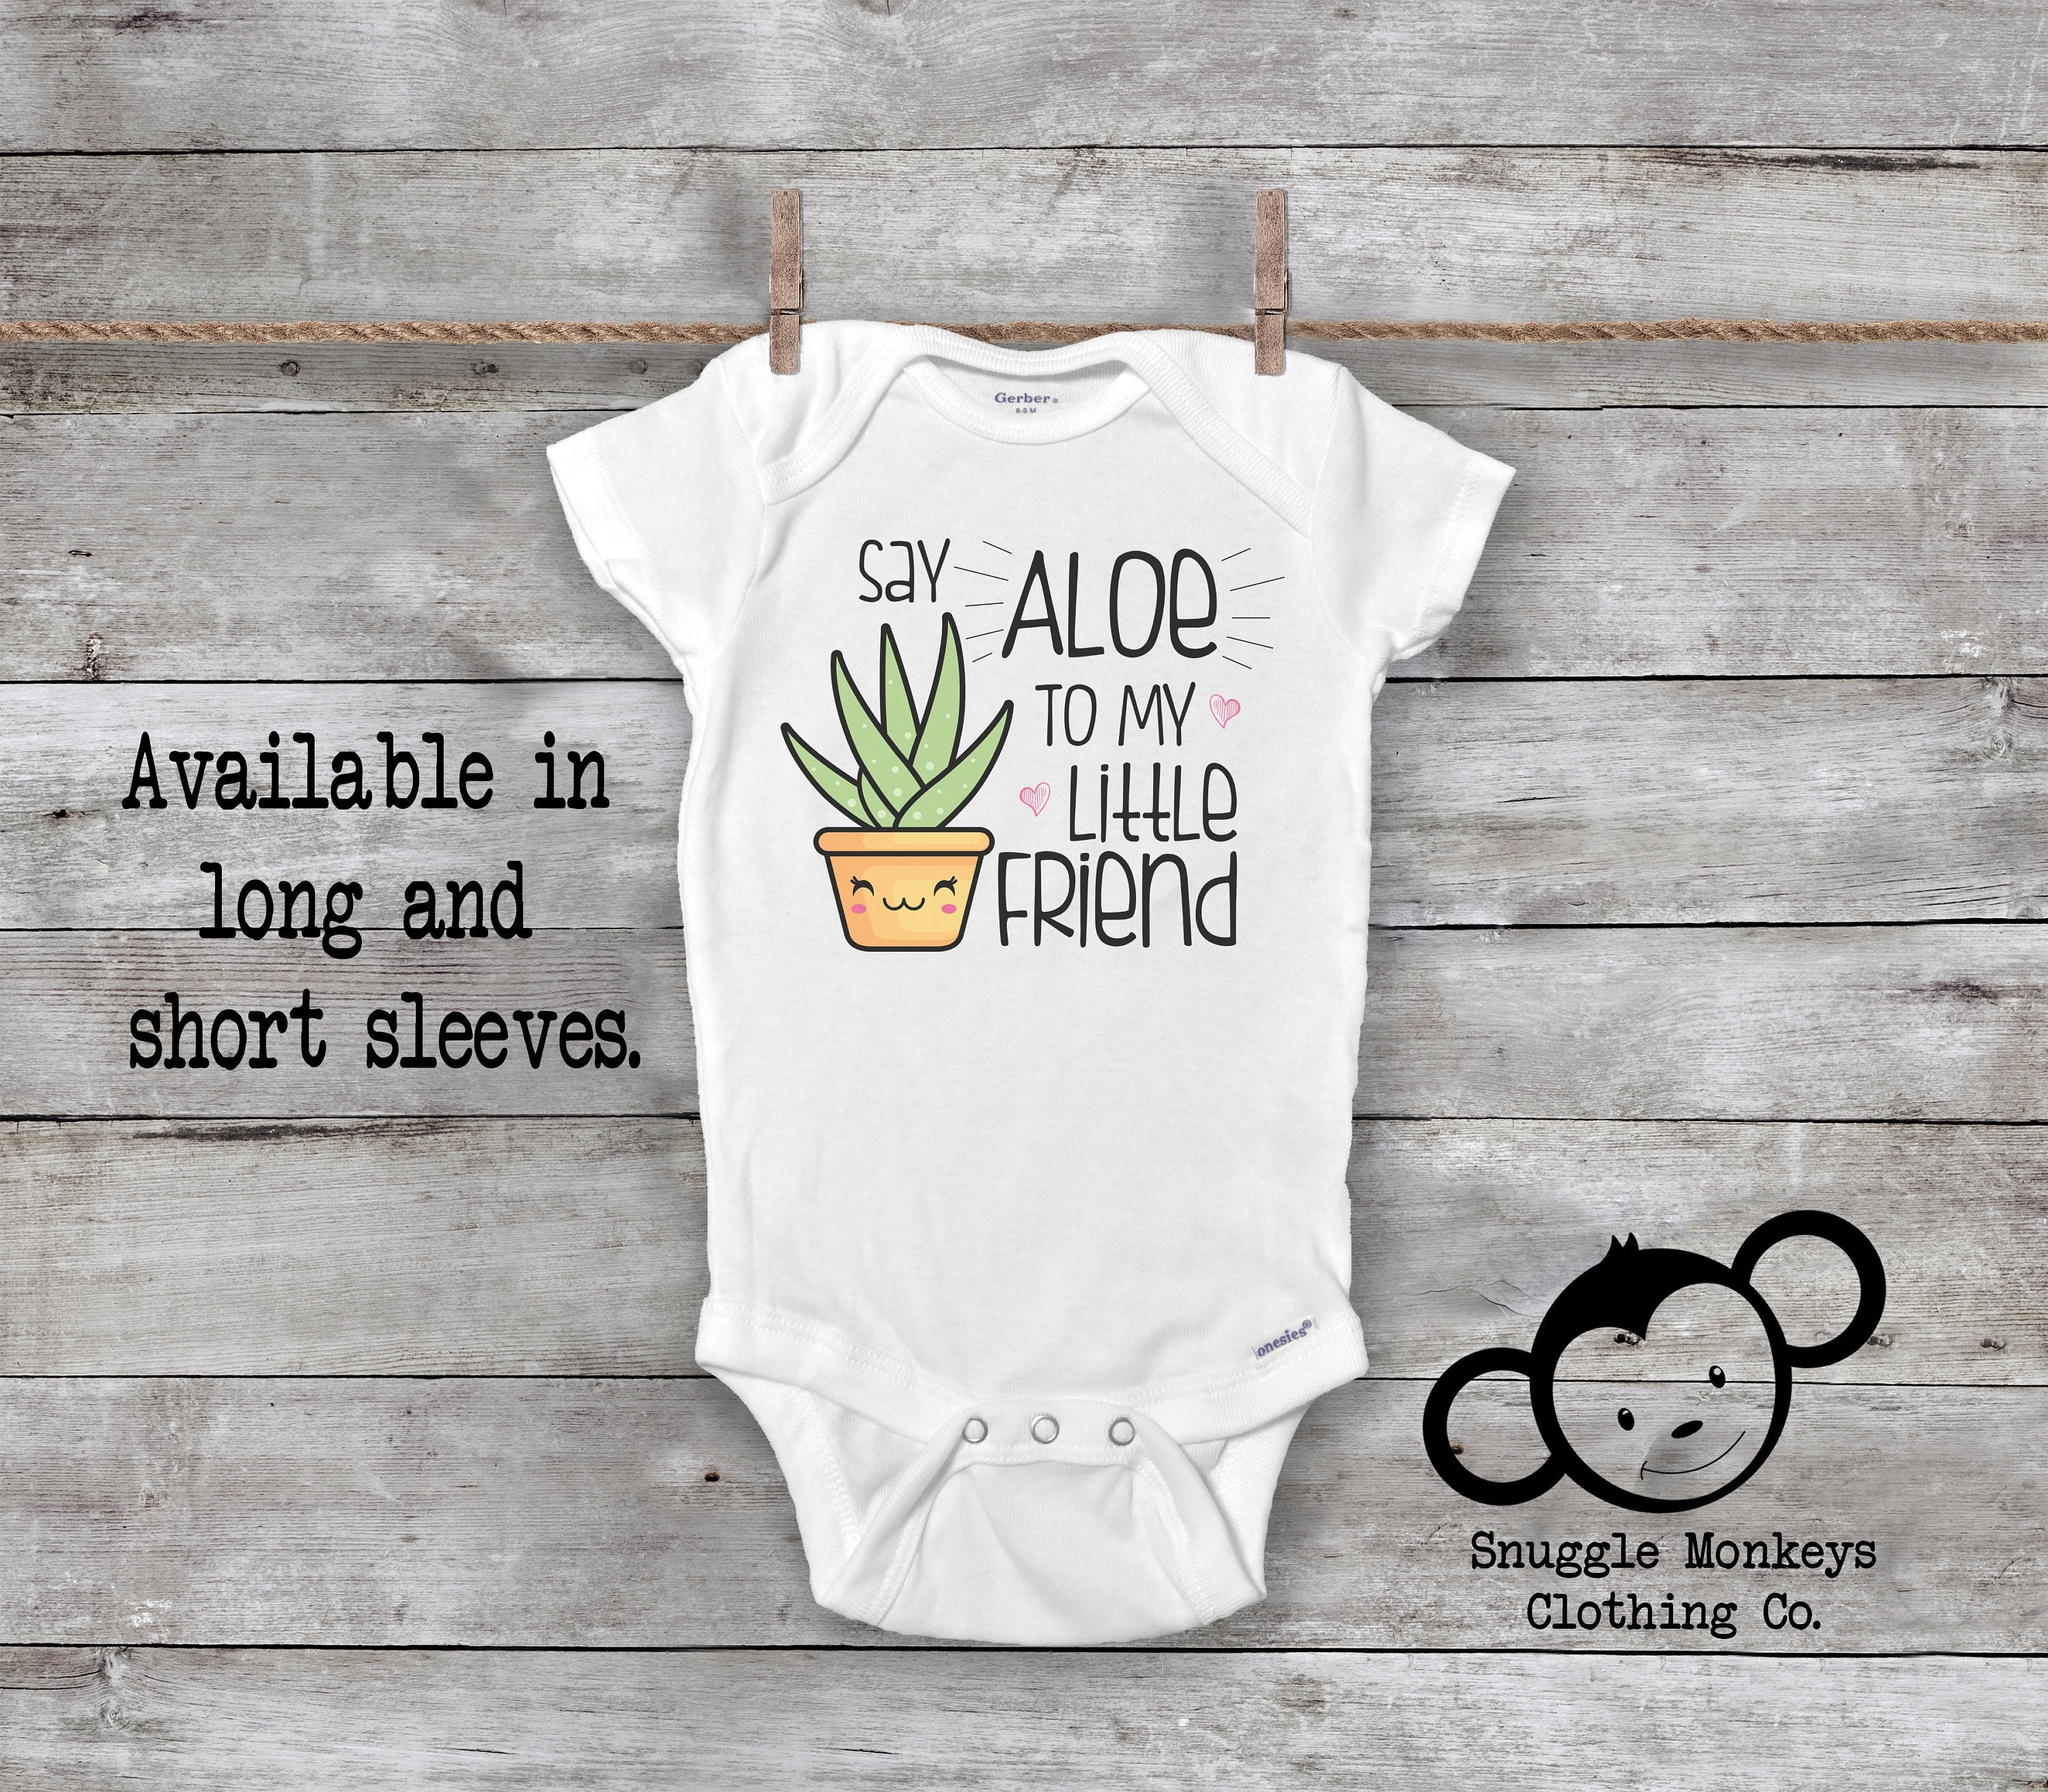 65b7c13be Funny Baby Onesie®, Say Aloe To My Little Friend, Baby Shower Gift, Funny Baby  Clothes, Funny Baby Gift, Plant Onesie, Unique Baby Gift